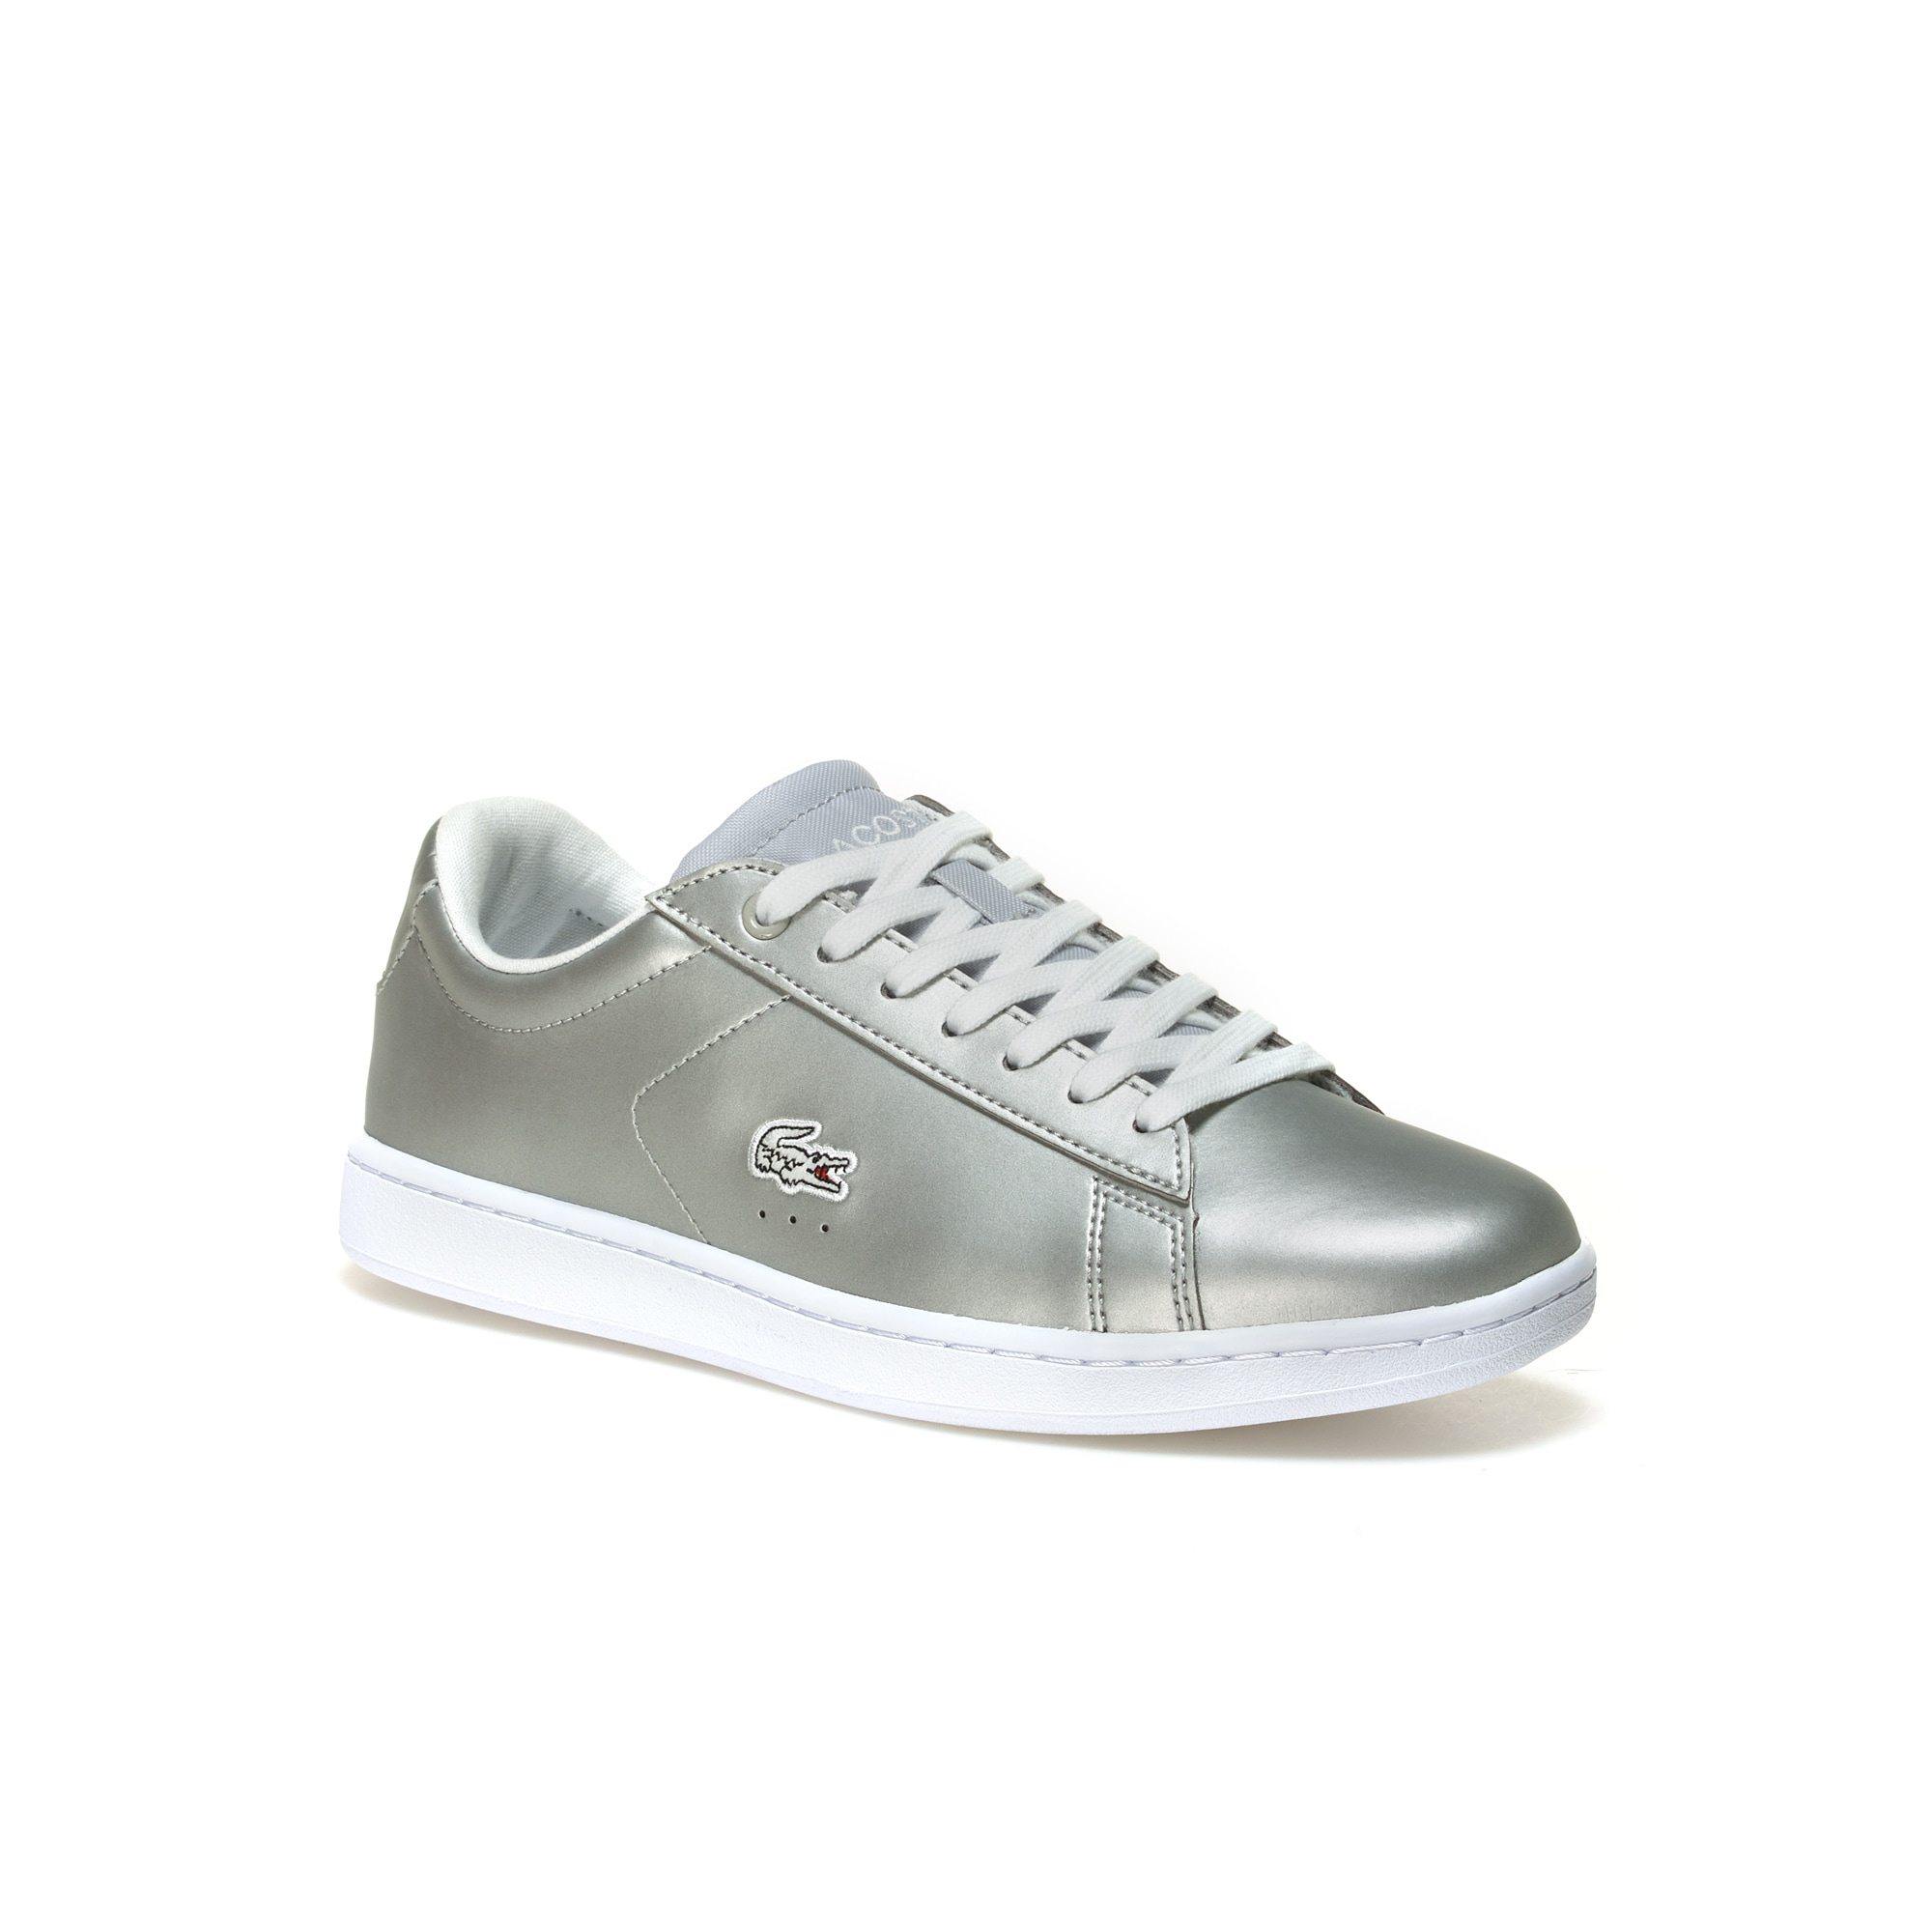 Women's Carnaby Evo Metallic Trainers